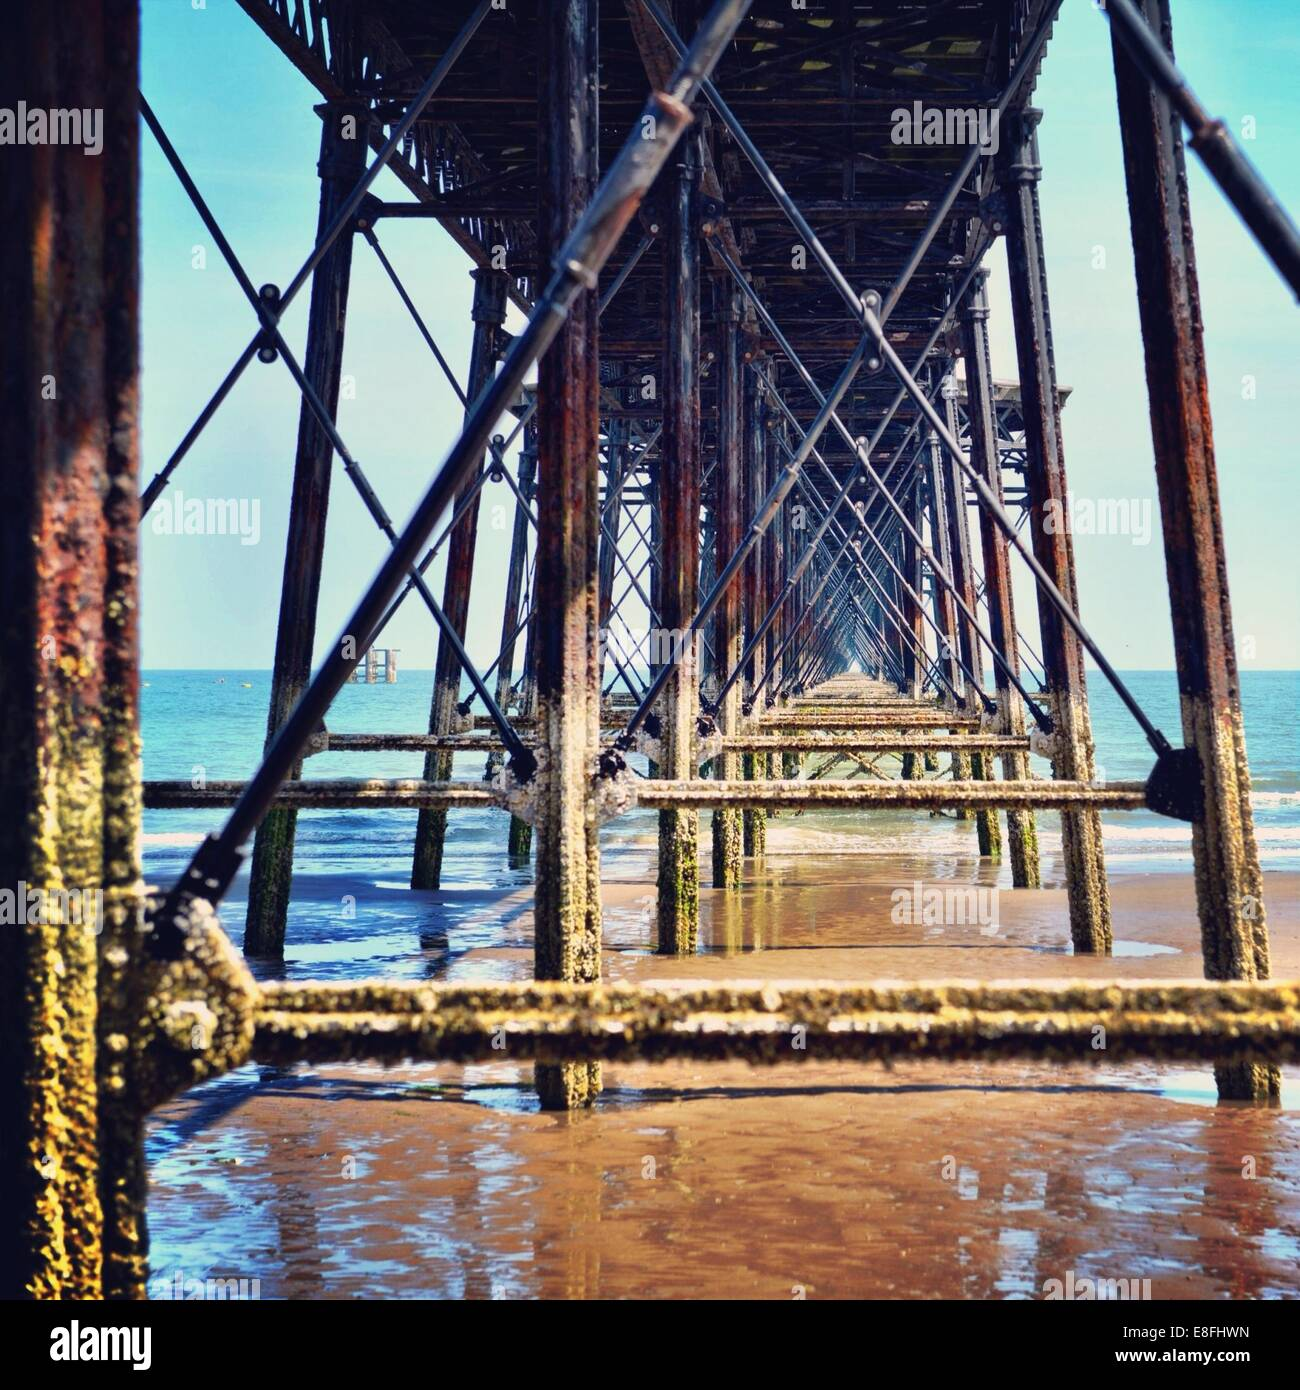 Isle of Man, Underneath Queen's Pier - Stock Image